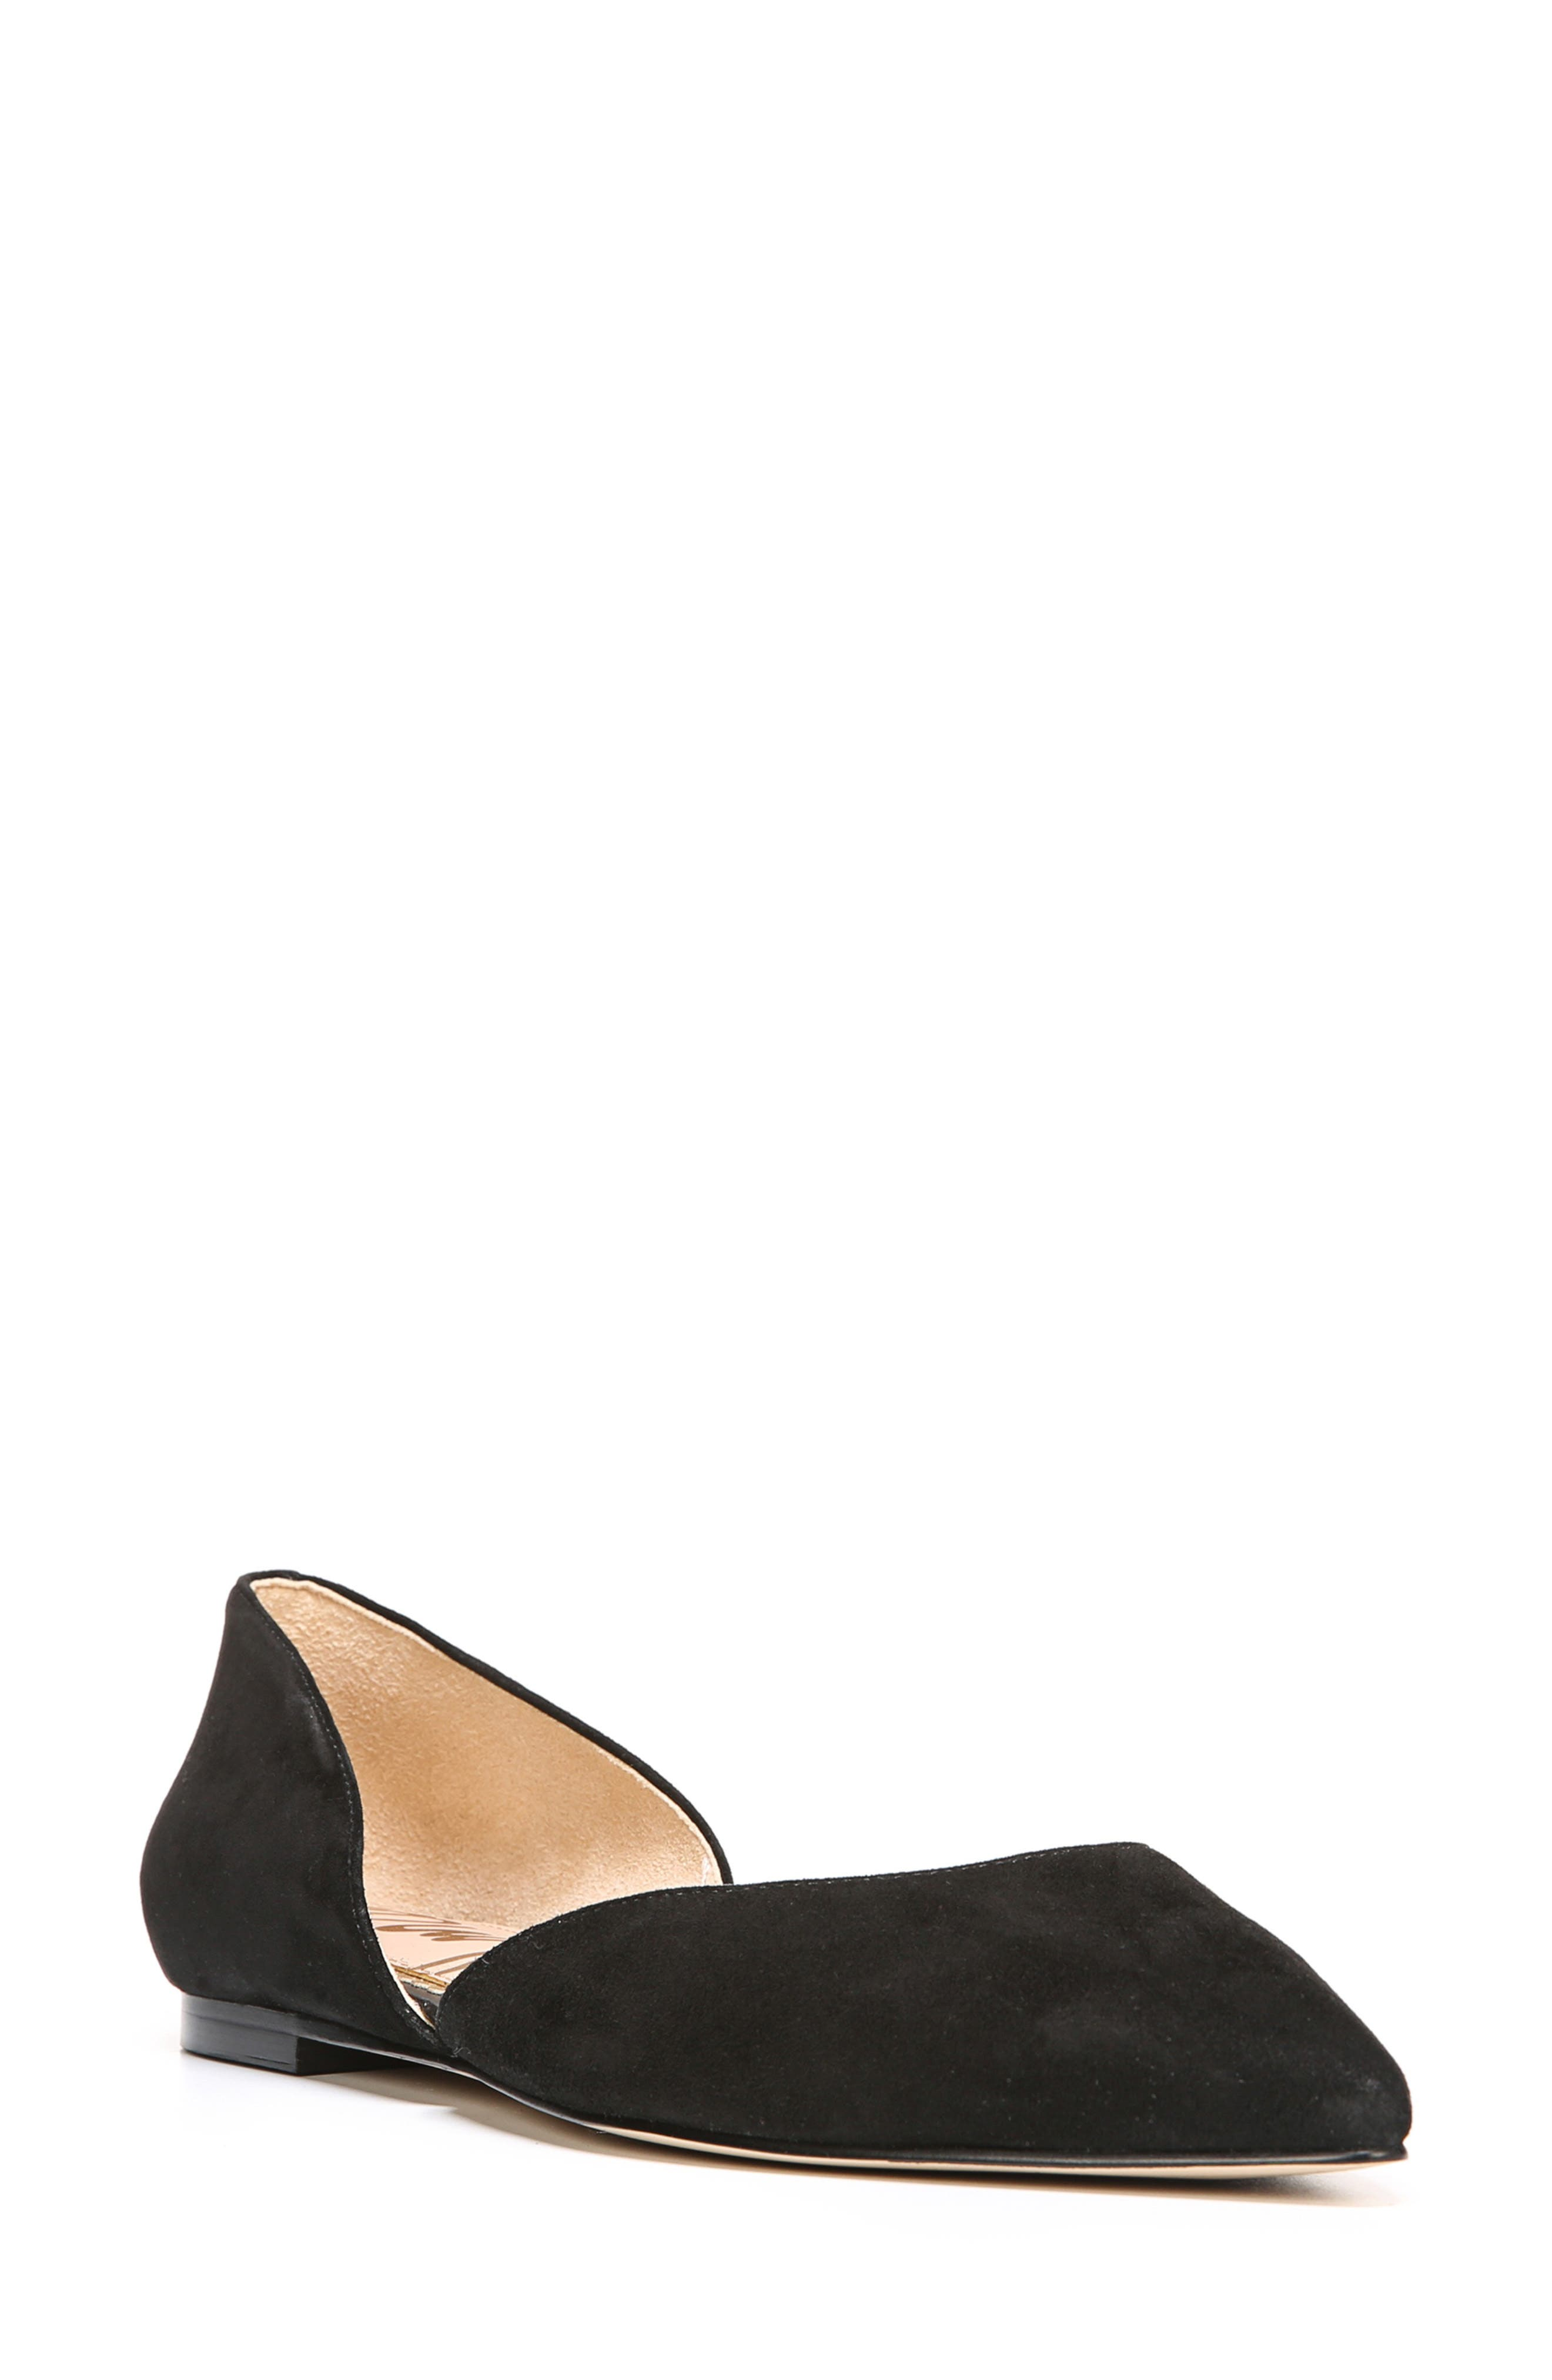 Image of Sam Edelman Rodney Pointed Toe d'Orsay Flat